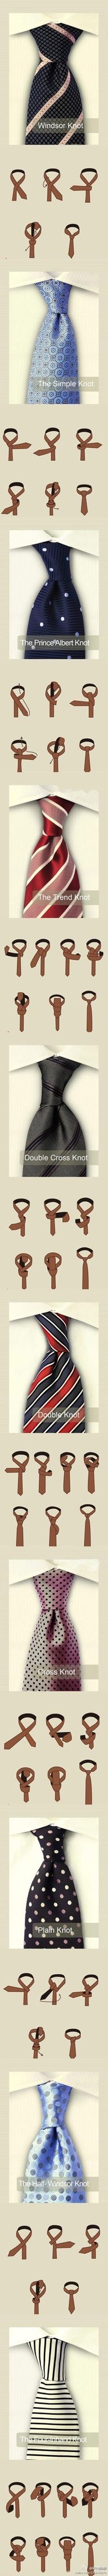 "How to #tie, ""tie knots"" #Handsome Men With #Style"